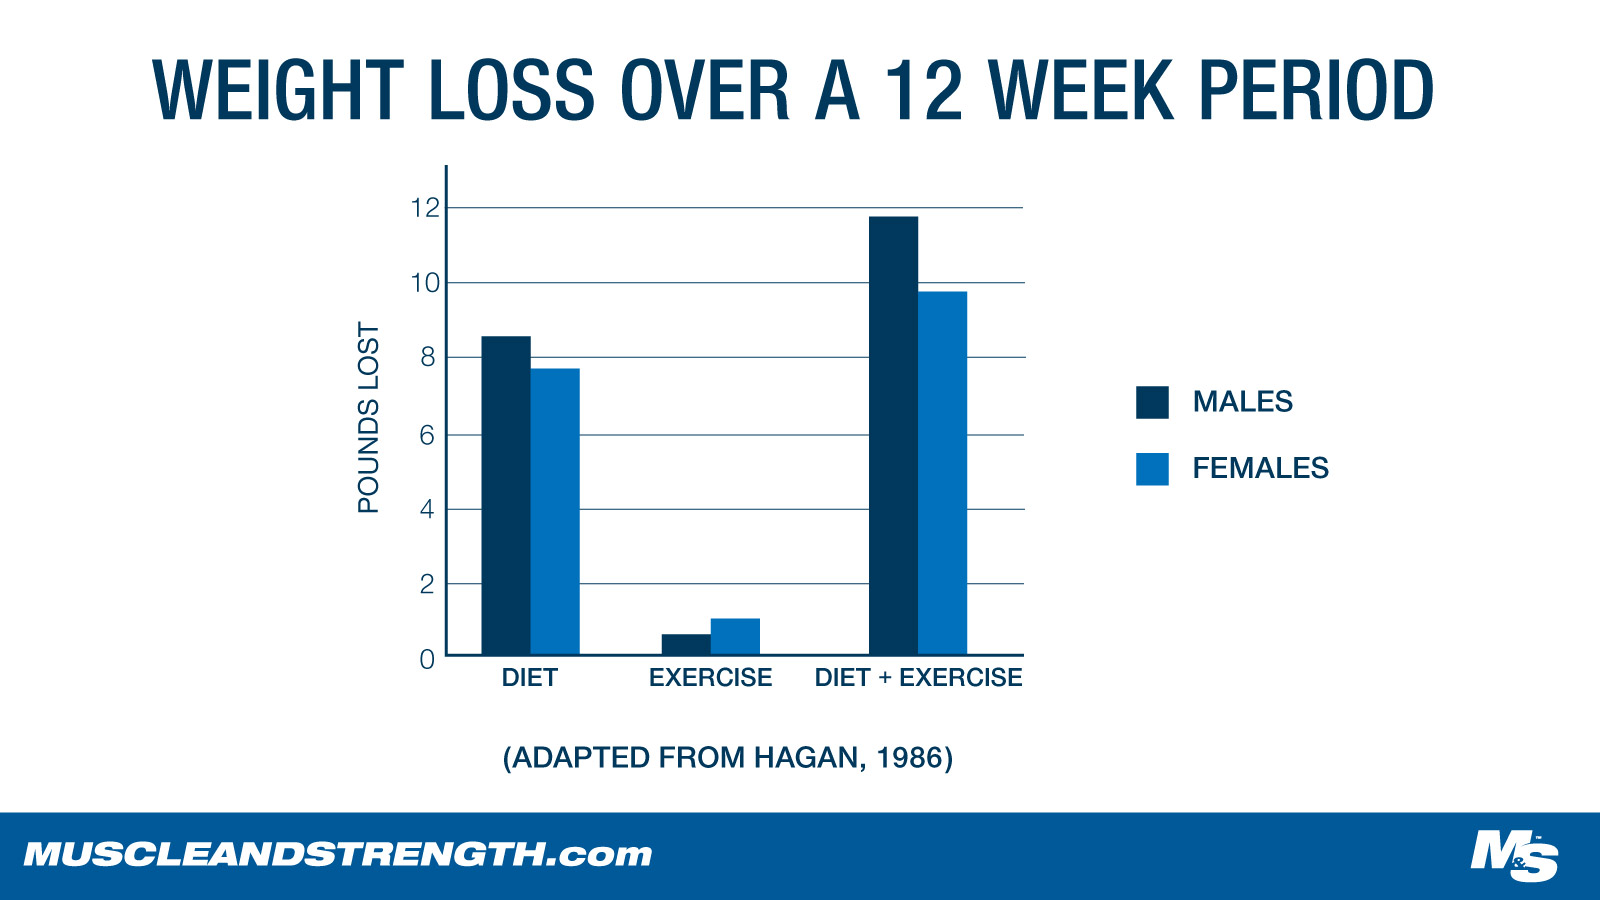 12 Week Weight Loss Study